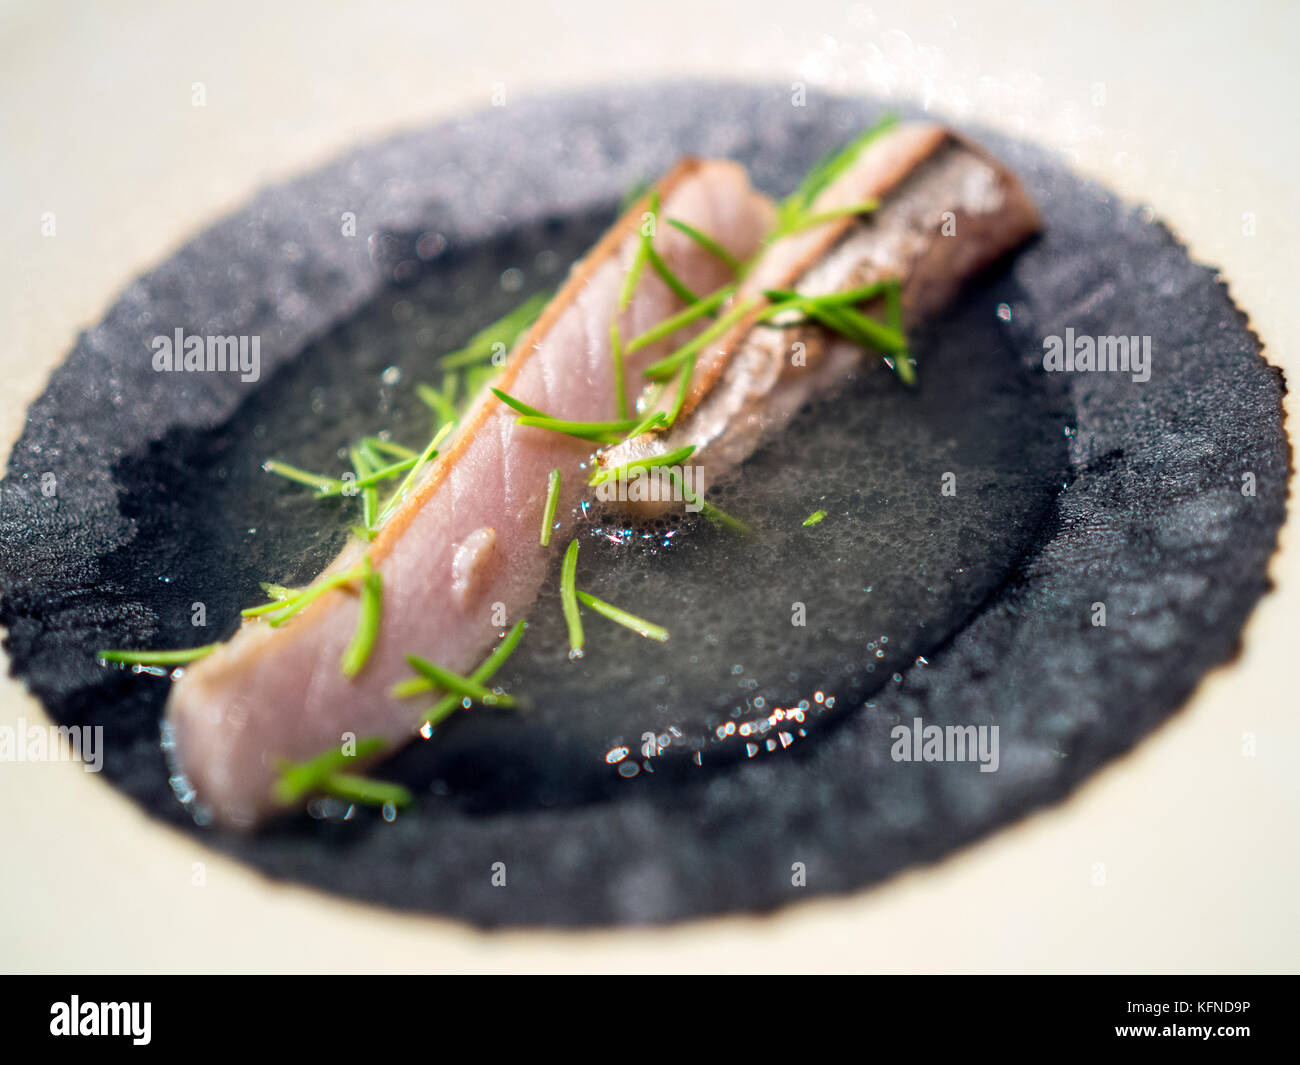 Mackerel with pine shoots cooked by Pai Holmberg from Bifångst, a two seat restaurant in Gothenberg. - Stock Image